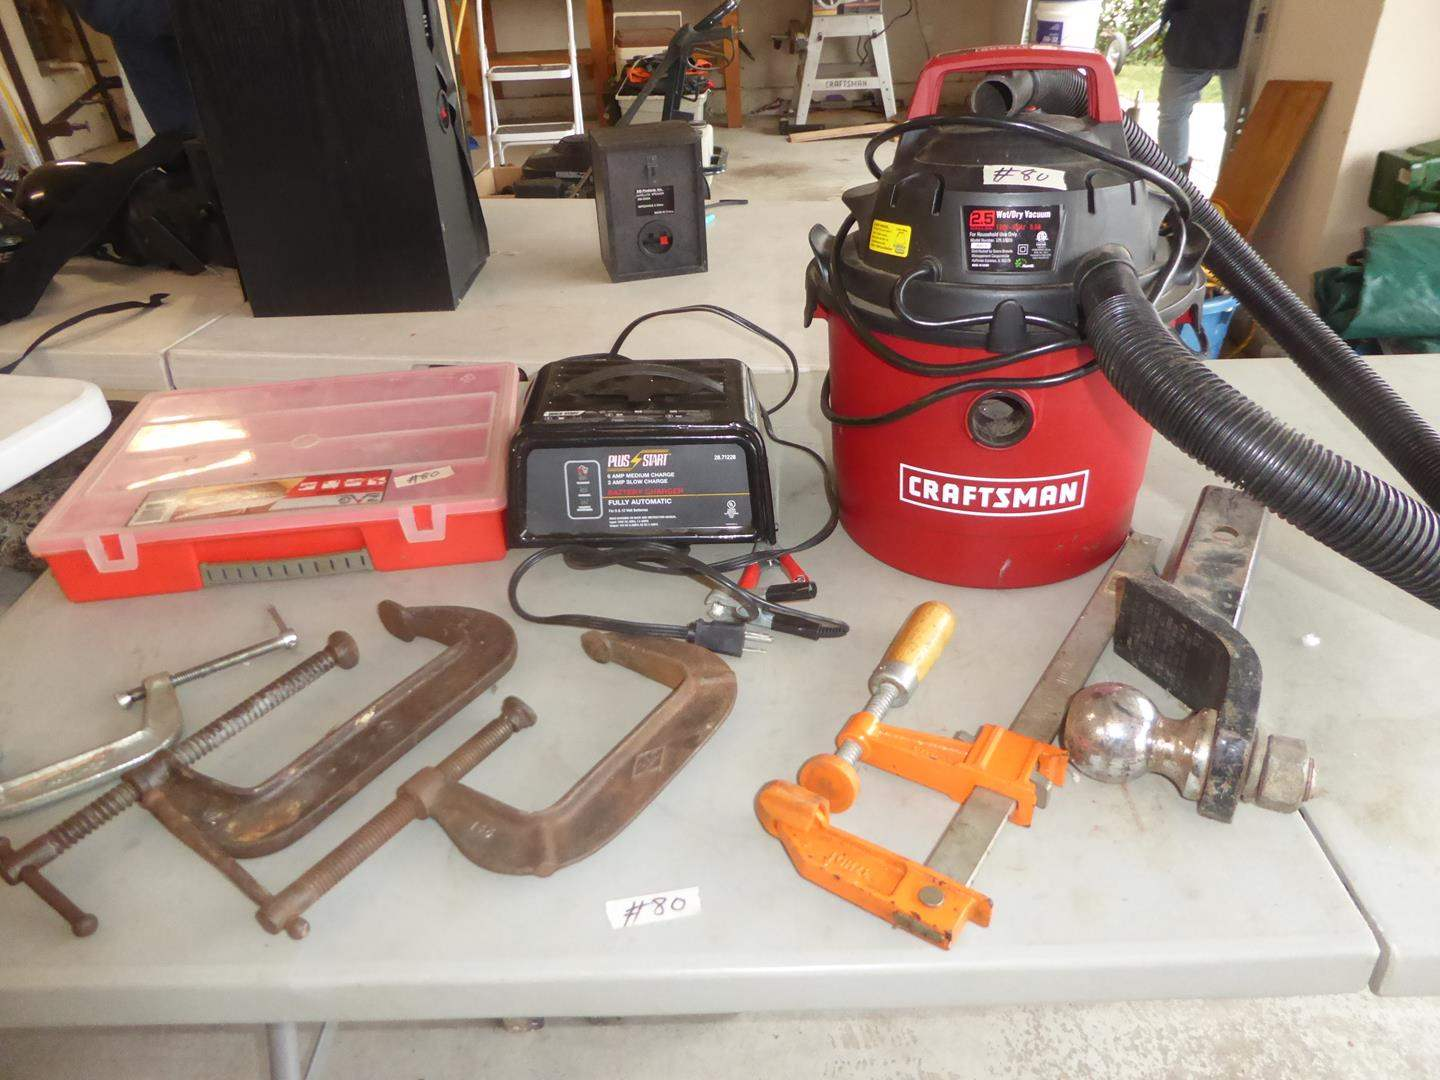 Lot # 80 - 'Craftsman' 2.5 Gallon Shop Vac, Battery Charger, Tire Pressure Gauges, Clamps & Hitch Receiver  (main image)